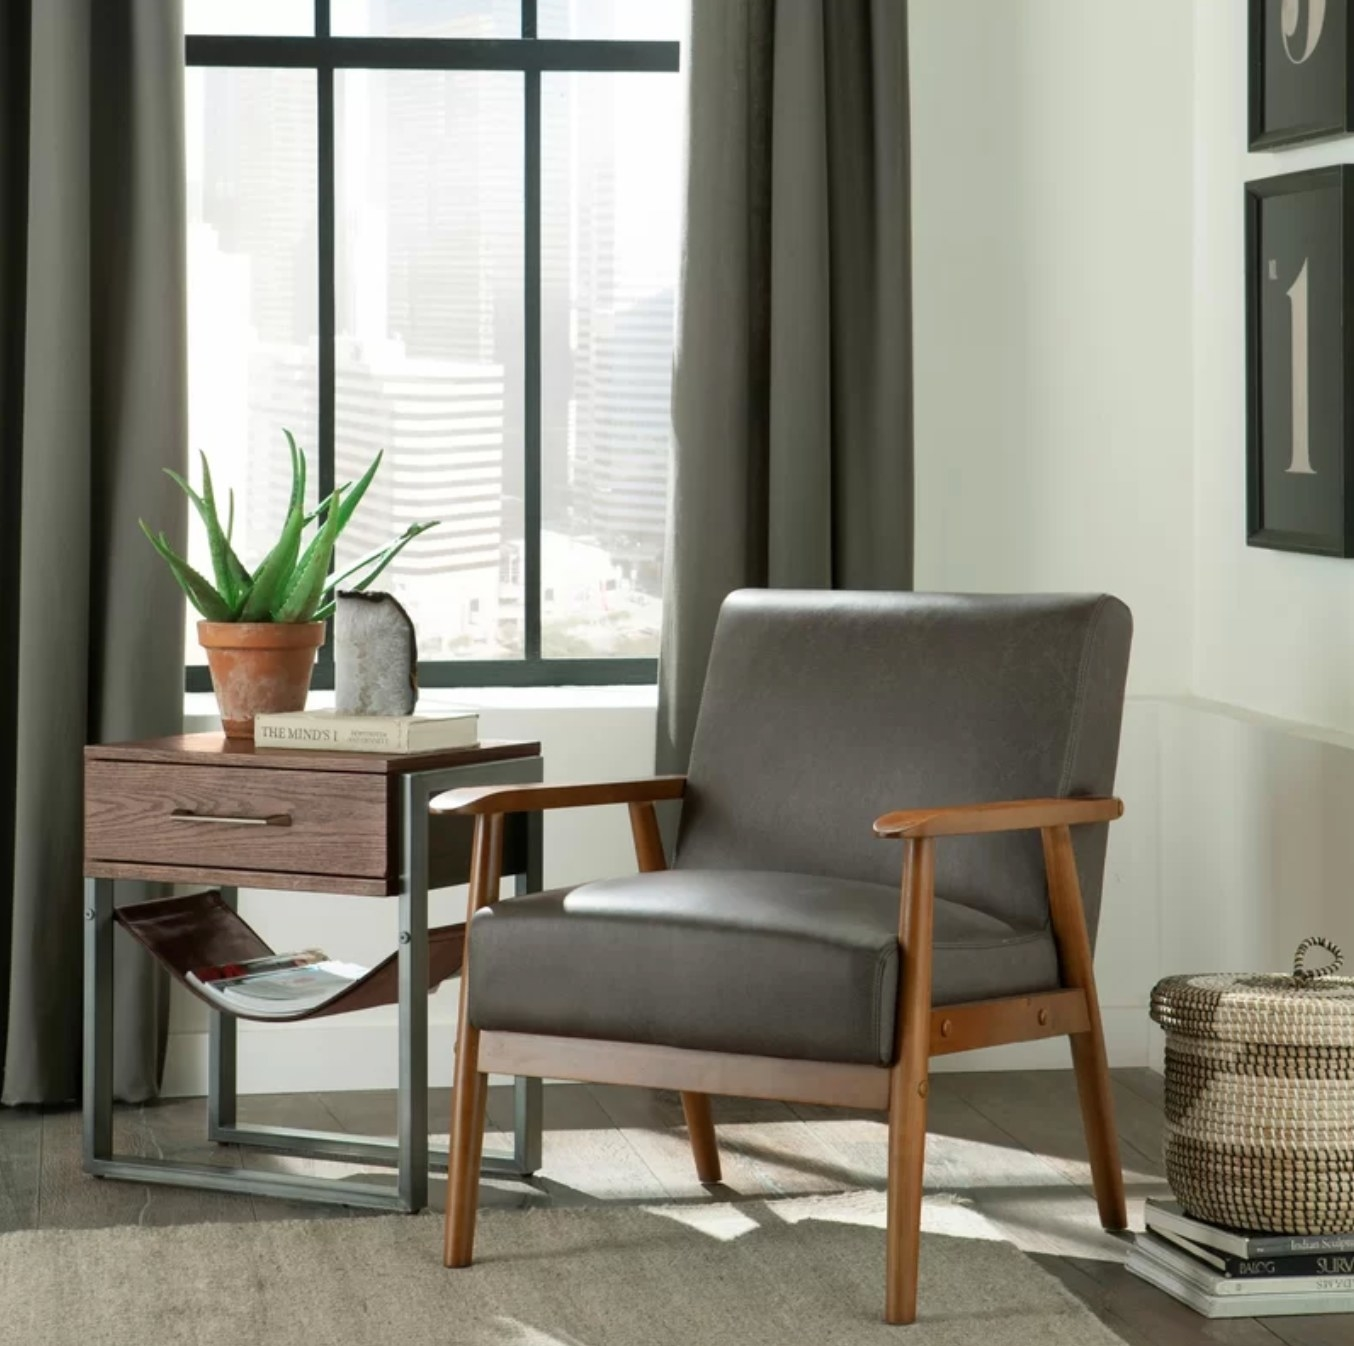 The faux leather armchair in steel with a wood frame